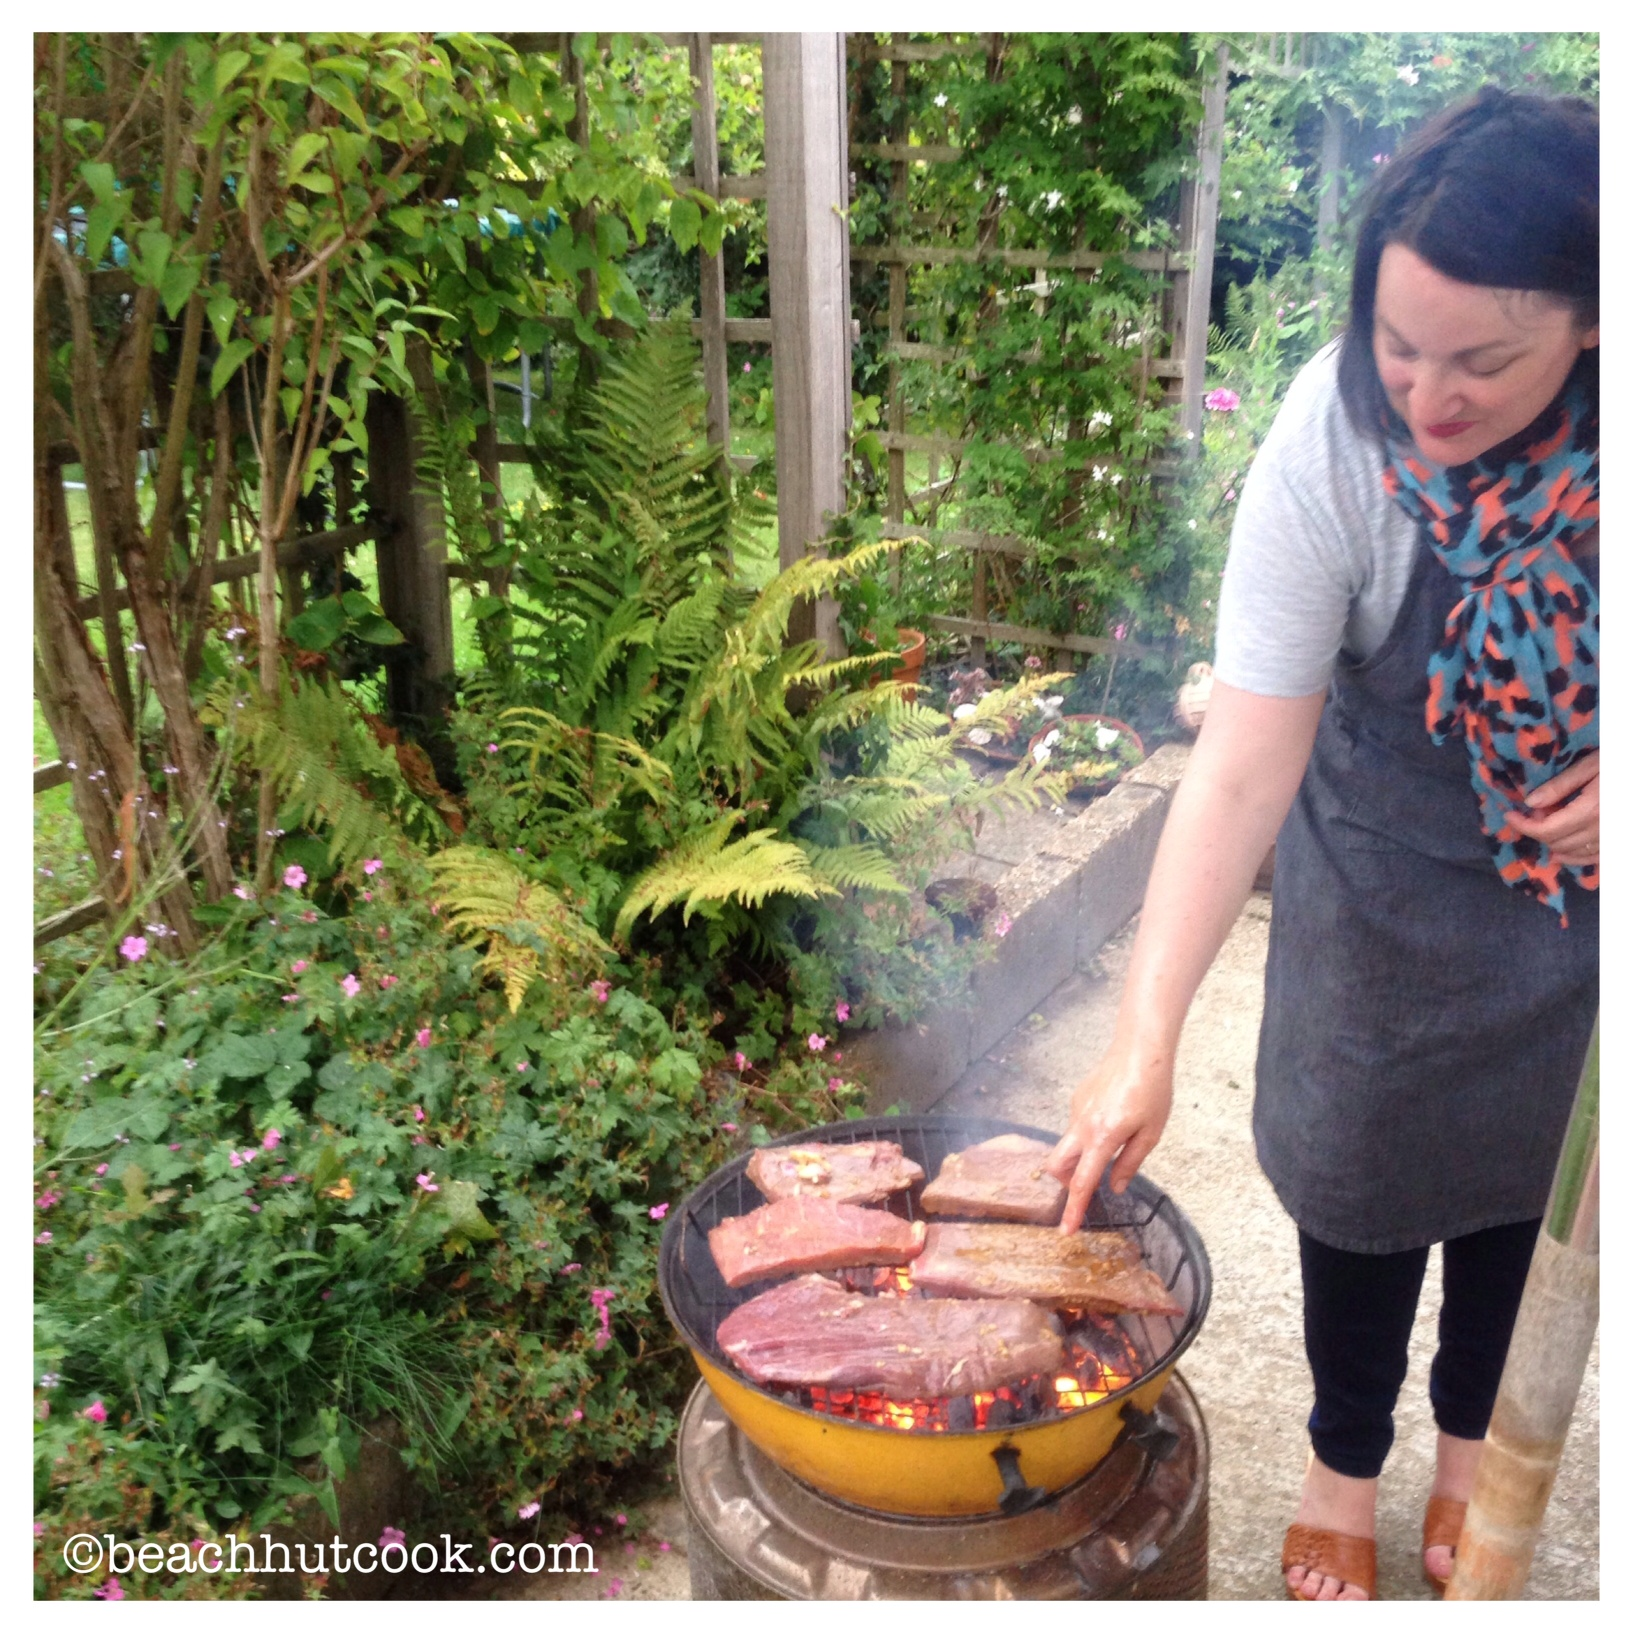 Beachhutcook shows How to Barbecue in the Rain - Feeding Steak for a Crowd